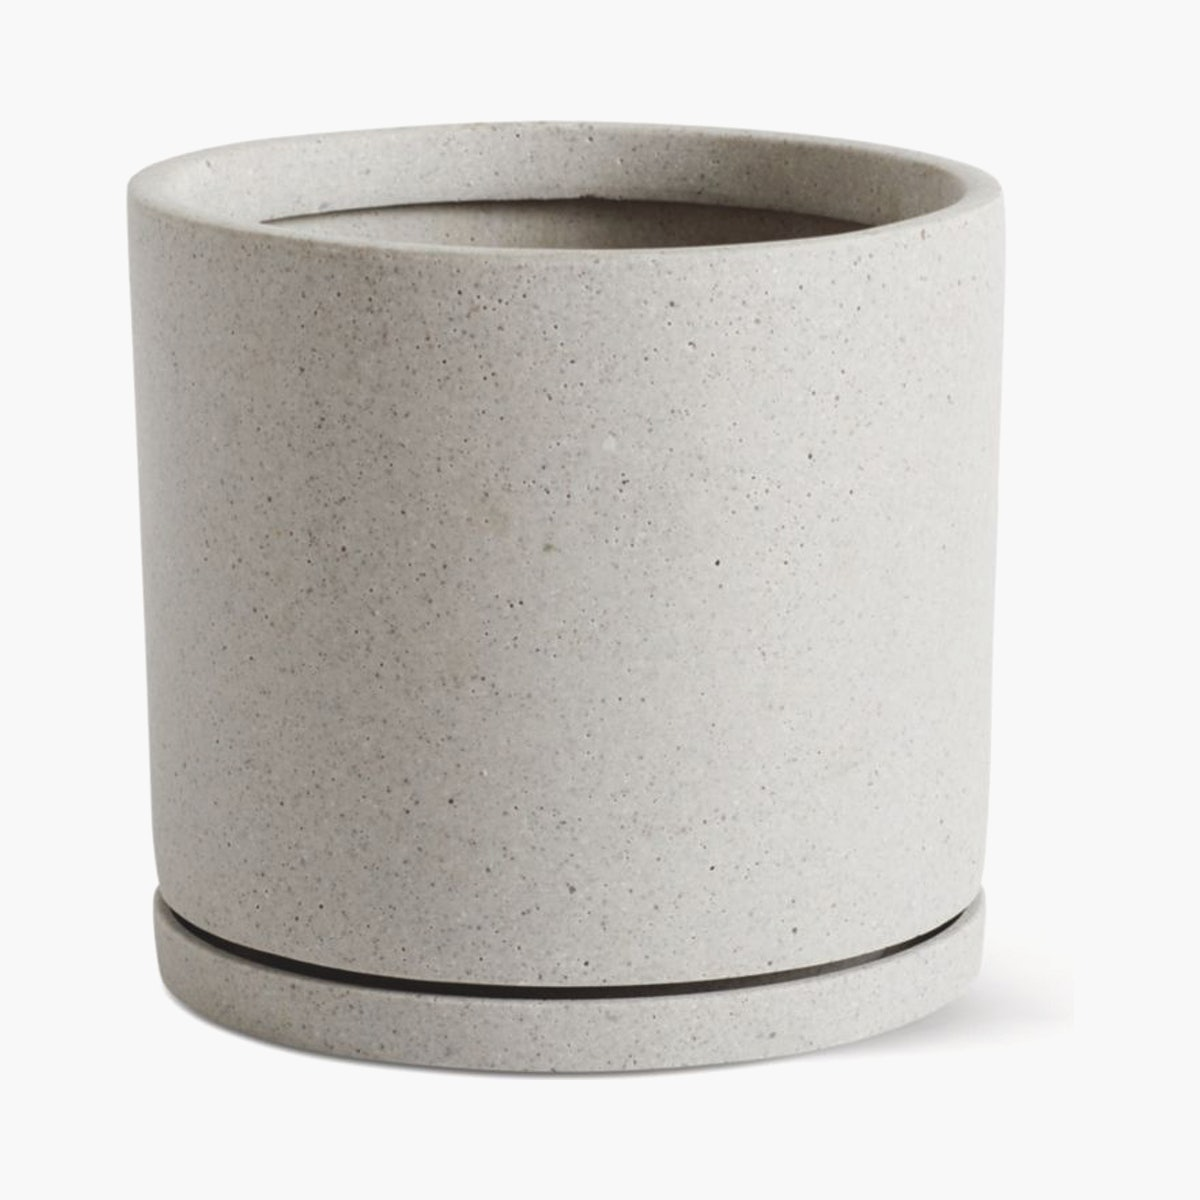 Plant Pot with Saucer